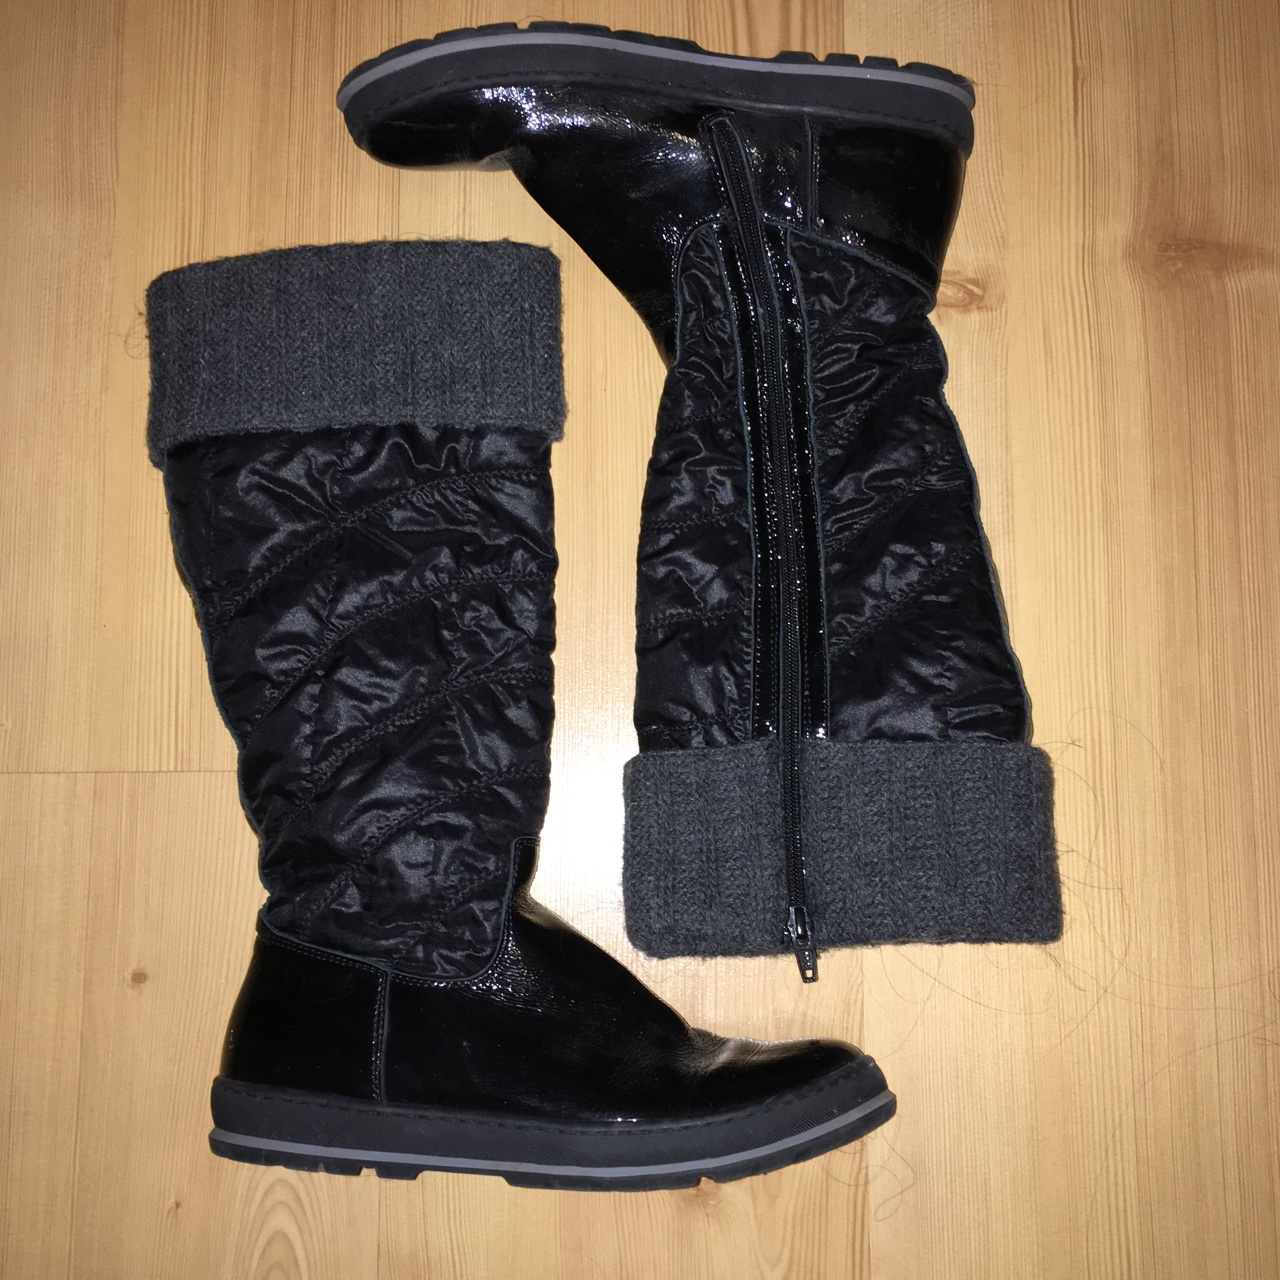 Kids boots from Russell and Bromley